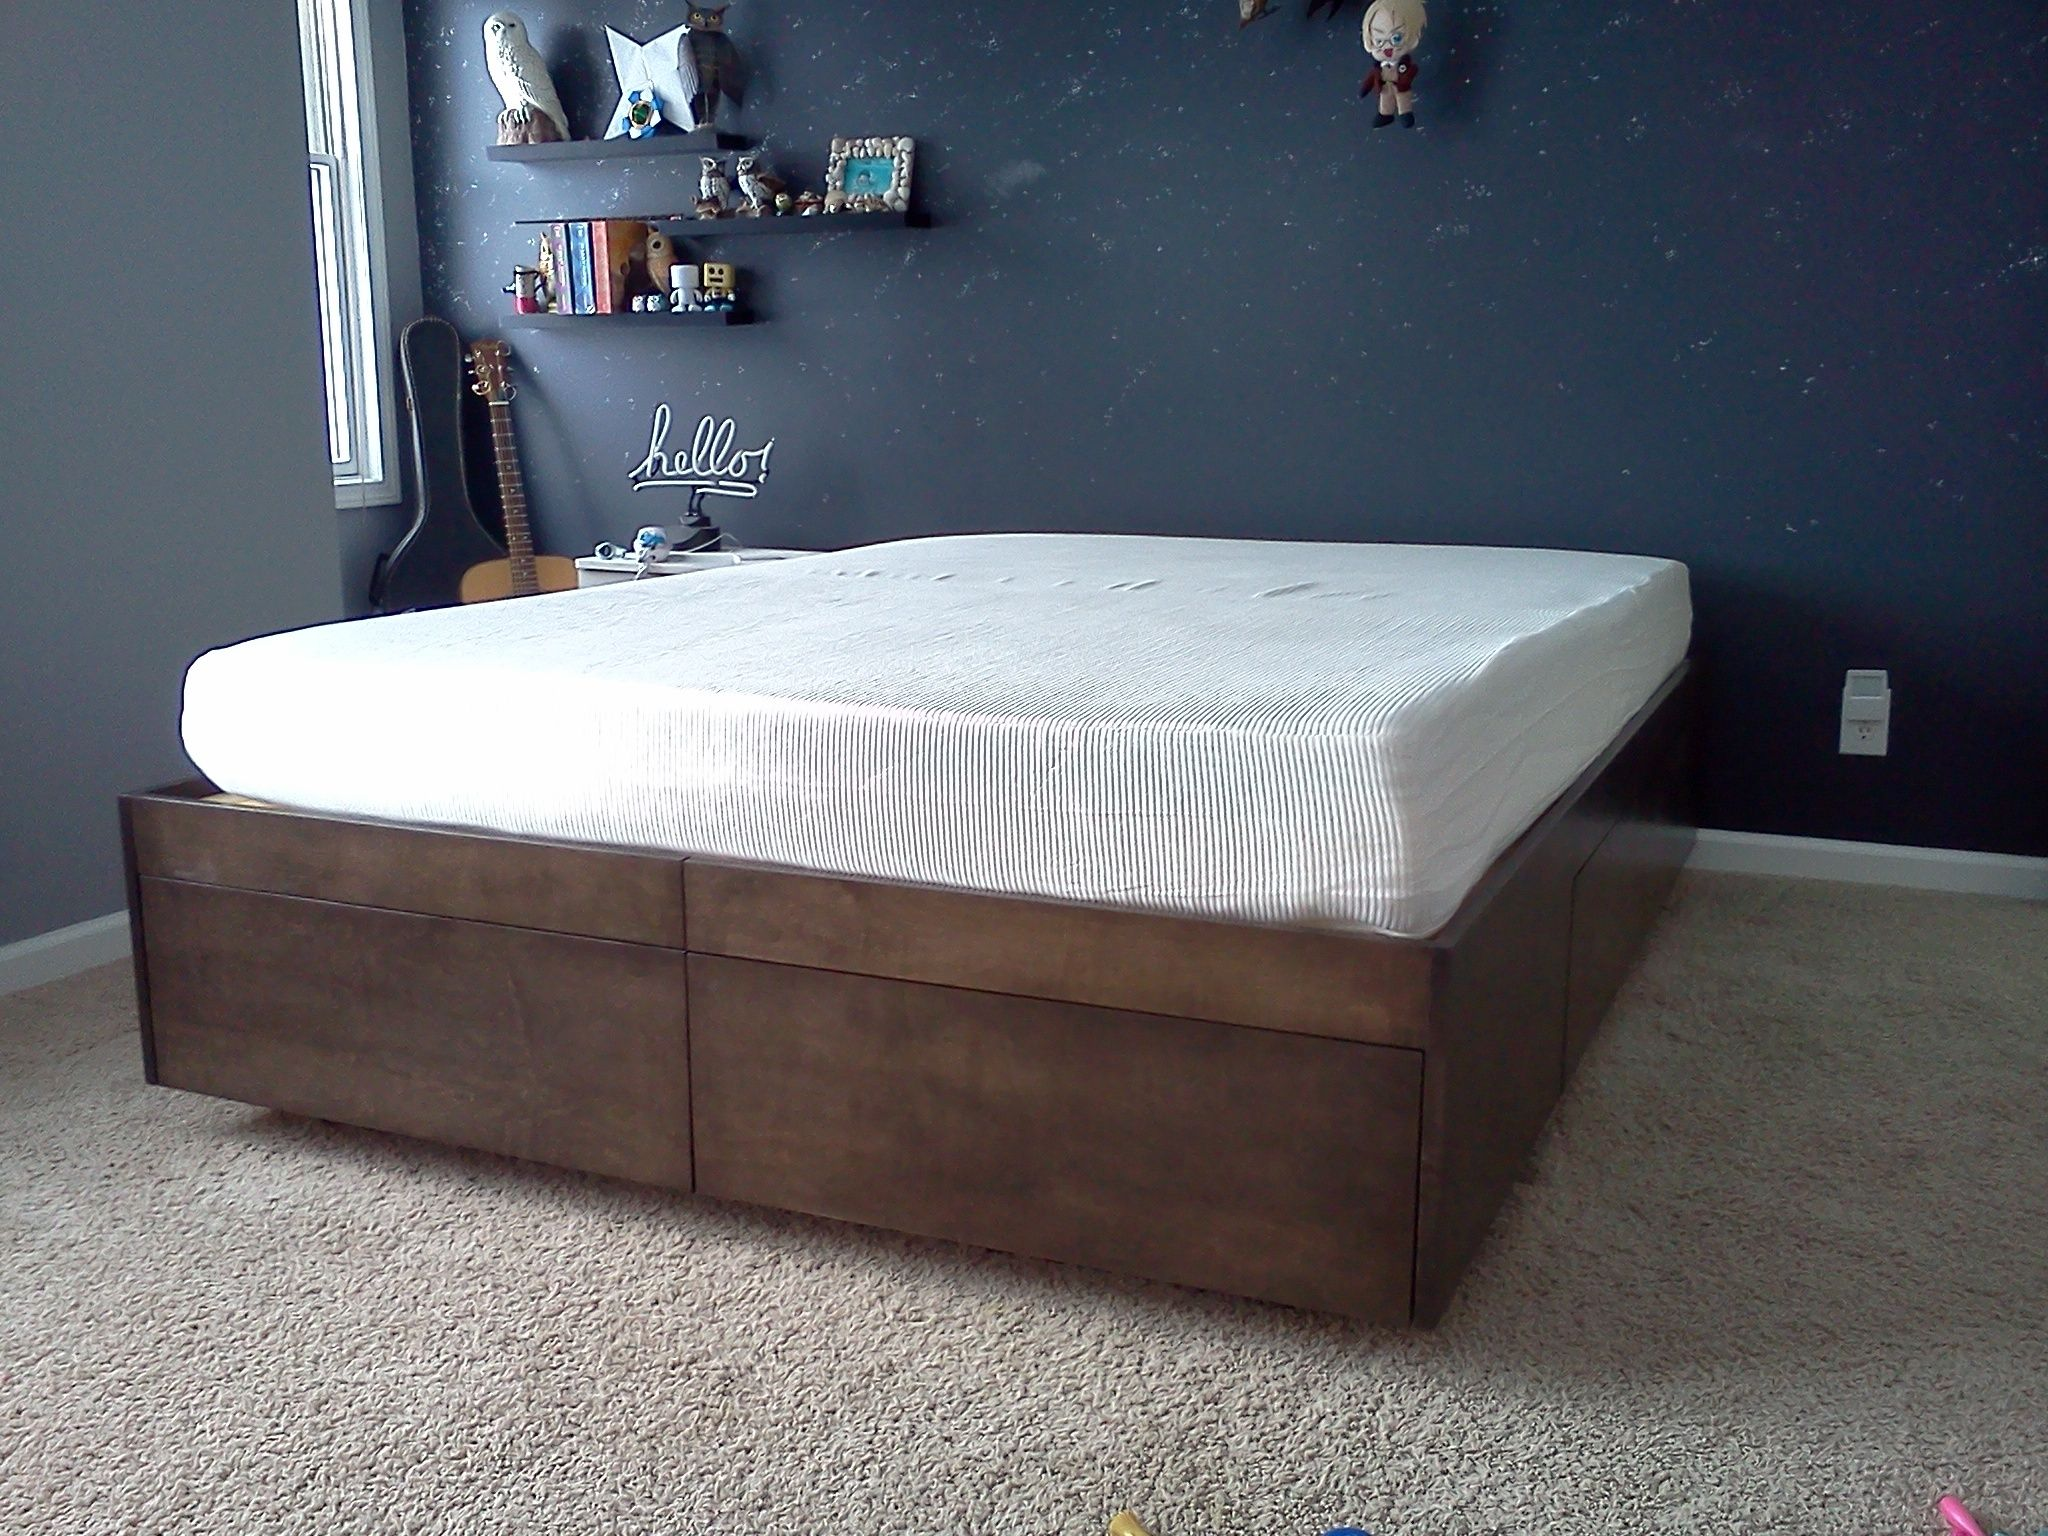 Platform Bed With Drawers Bed frame with drawers